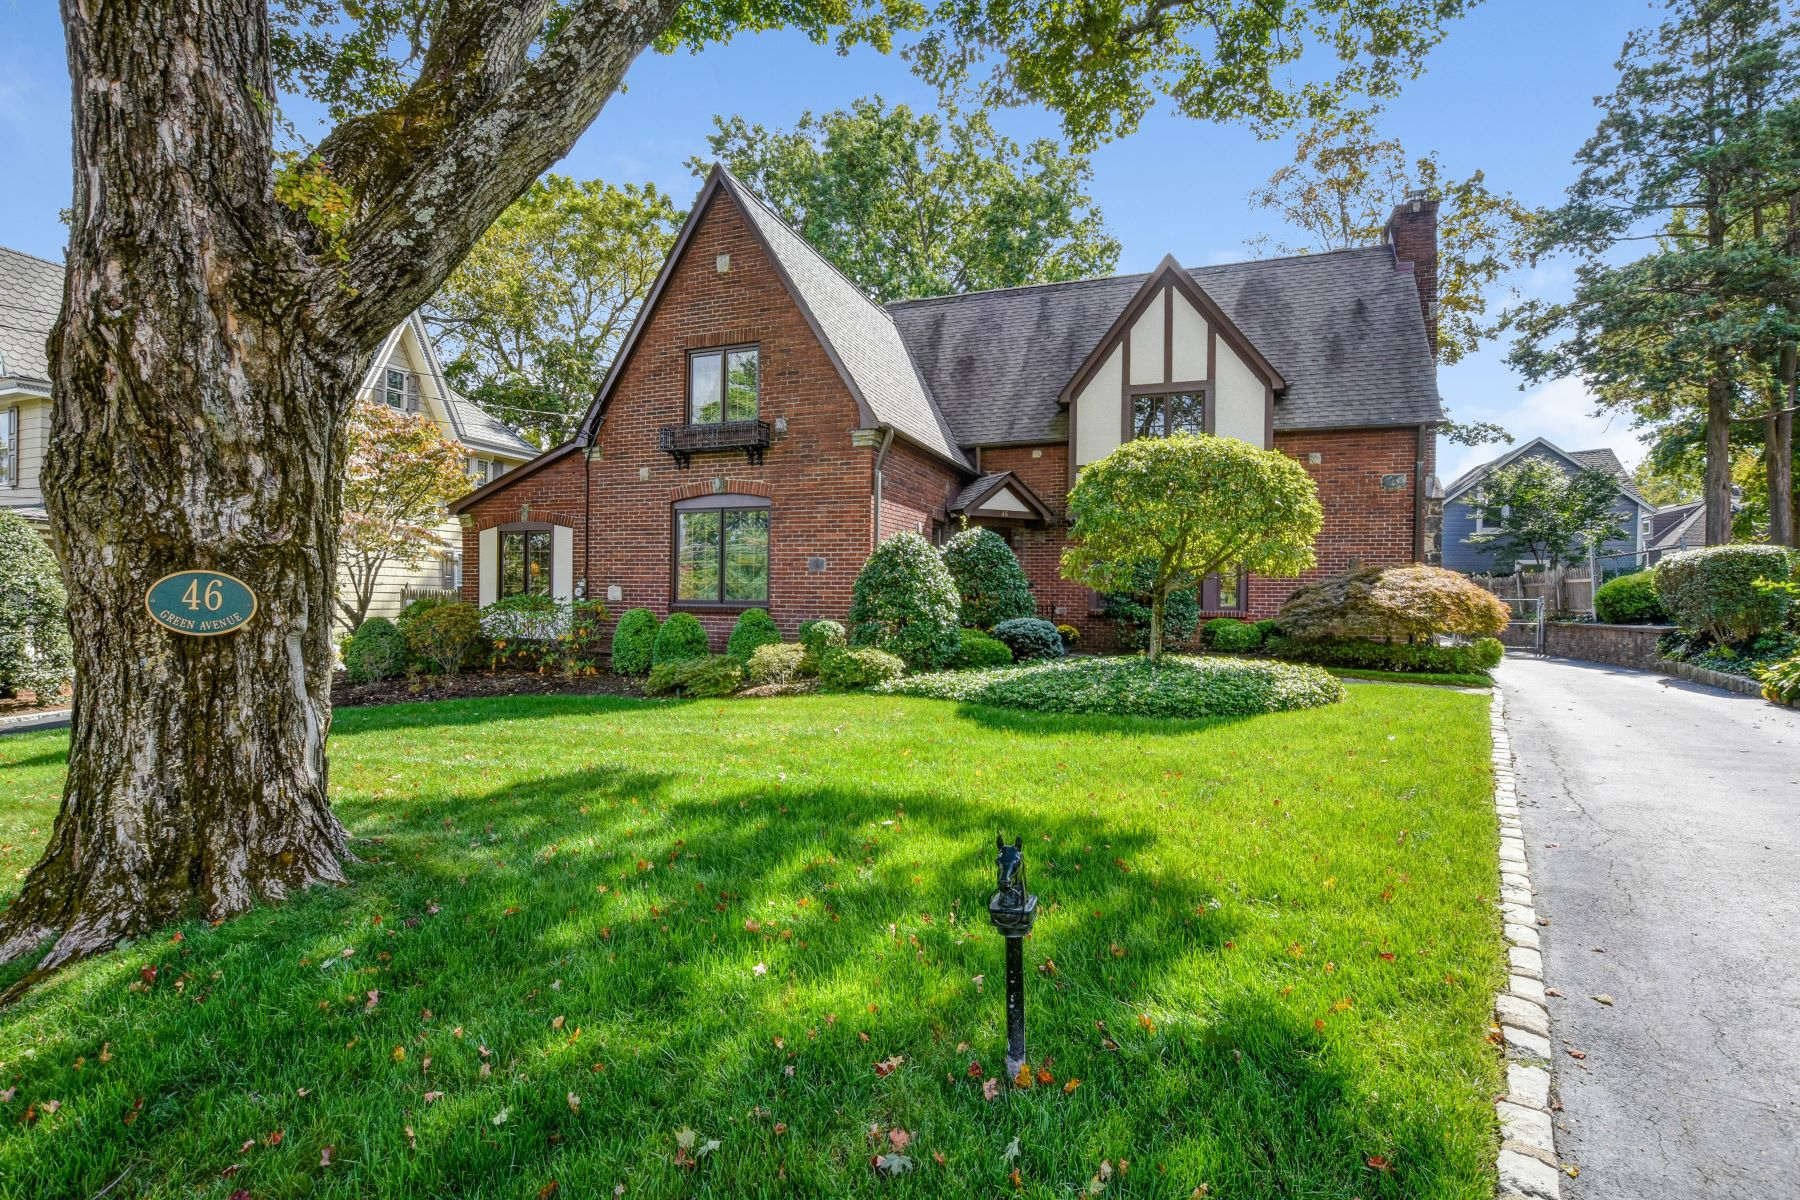 Single Family Homes for Sale at Storybook Tudor 46 Green Avenue Madison, New Jersey 07940 United States